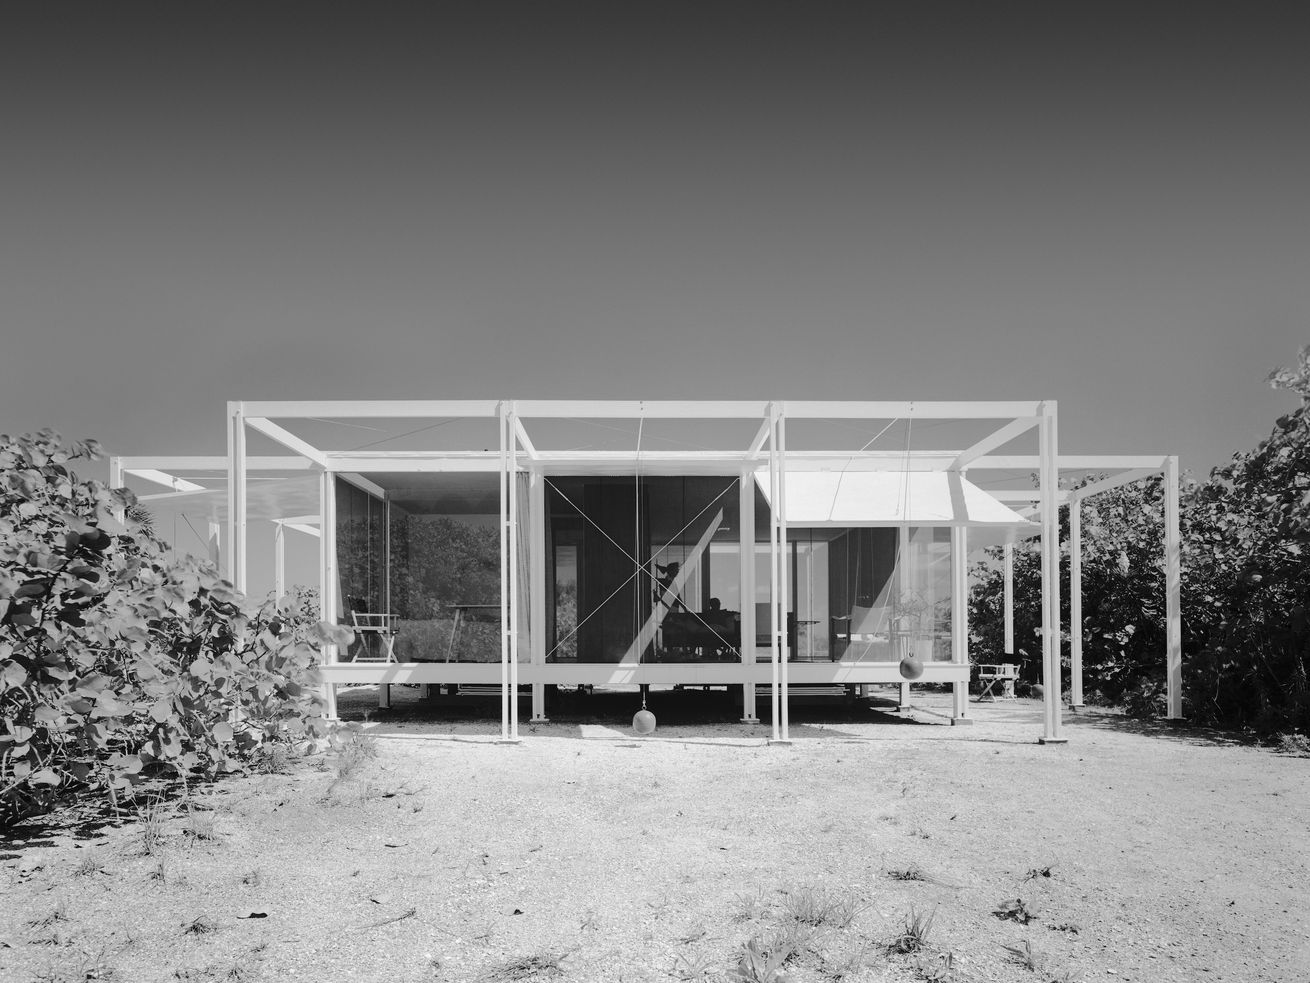 Paul Rudolph?s Walker Guest House is heading to auction